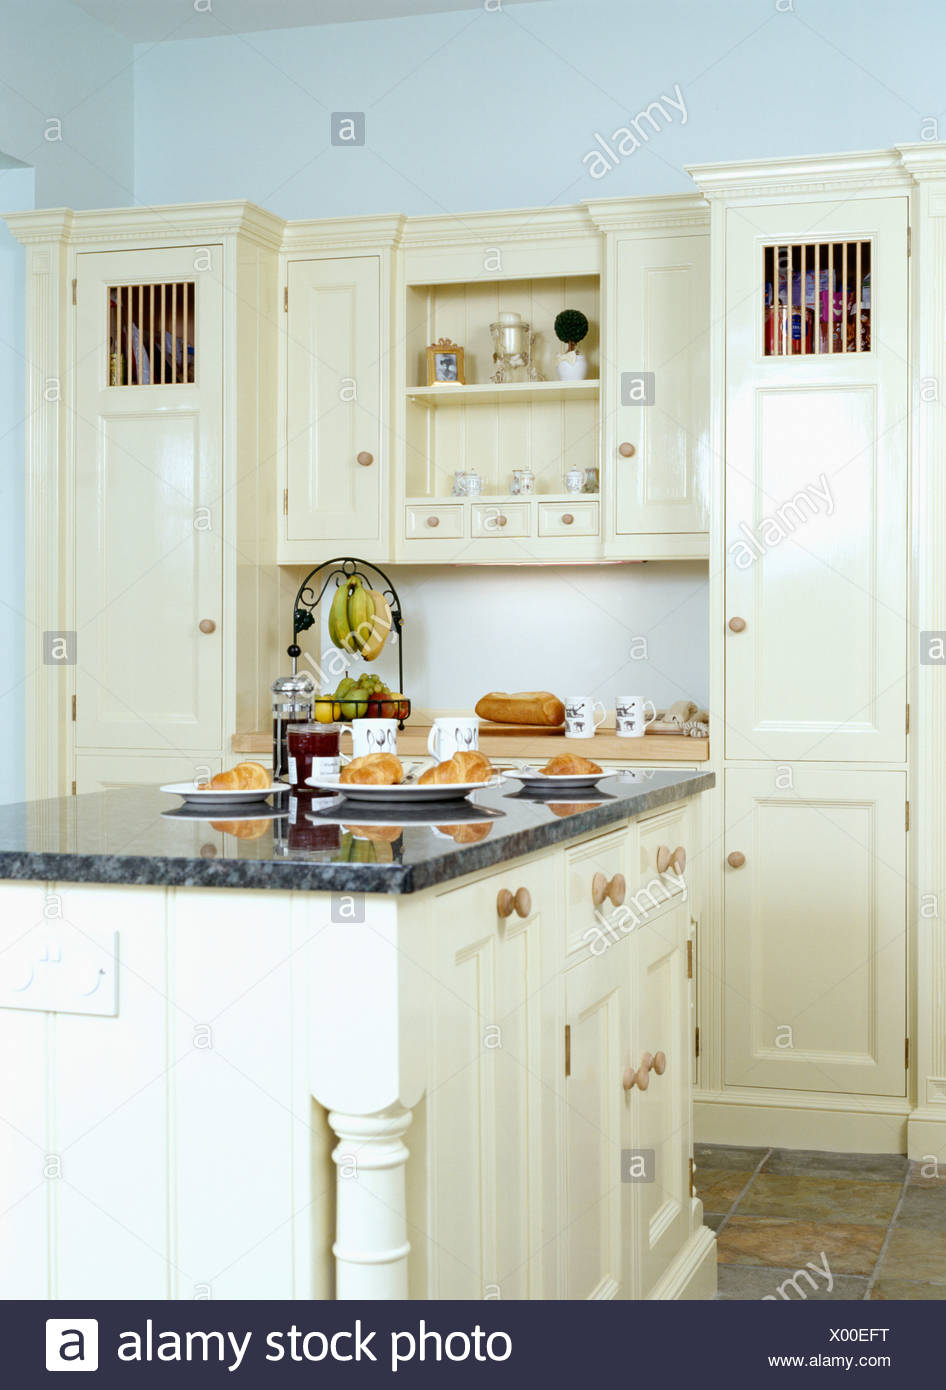 Kitchen Island Unit Neutral Neutrals Stock Photos & Kitchen Island ...